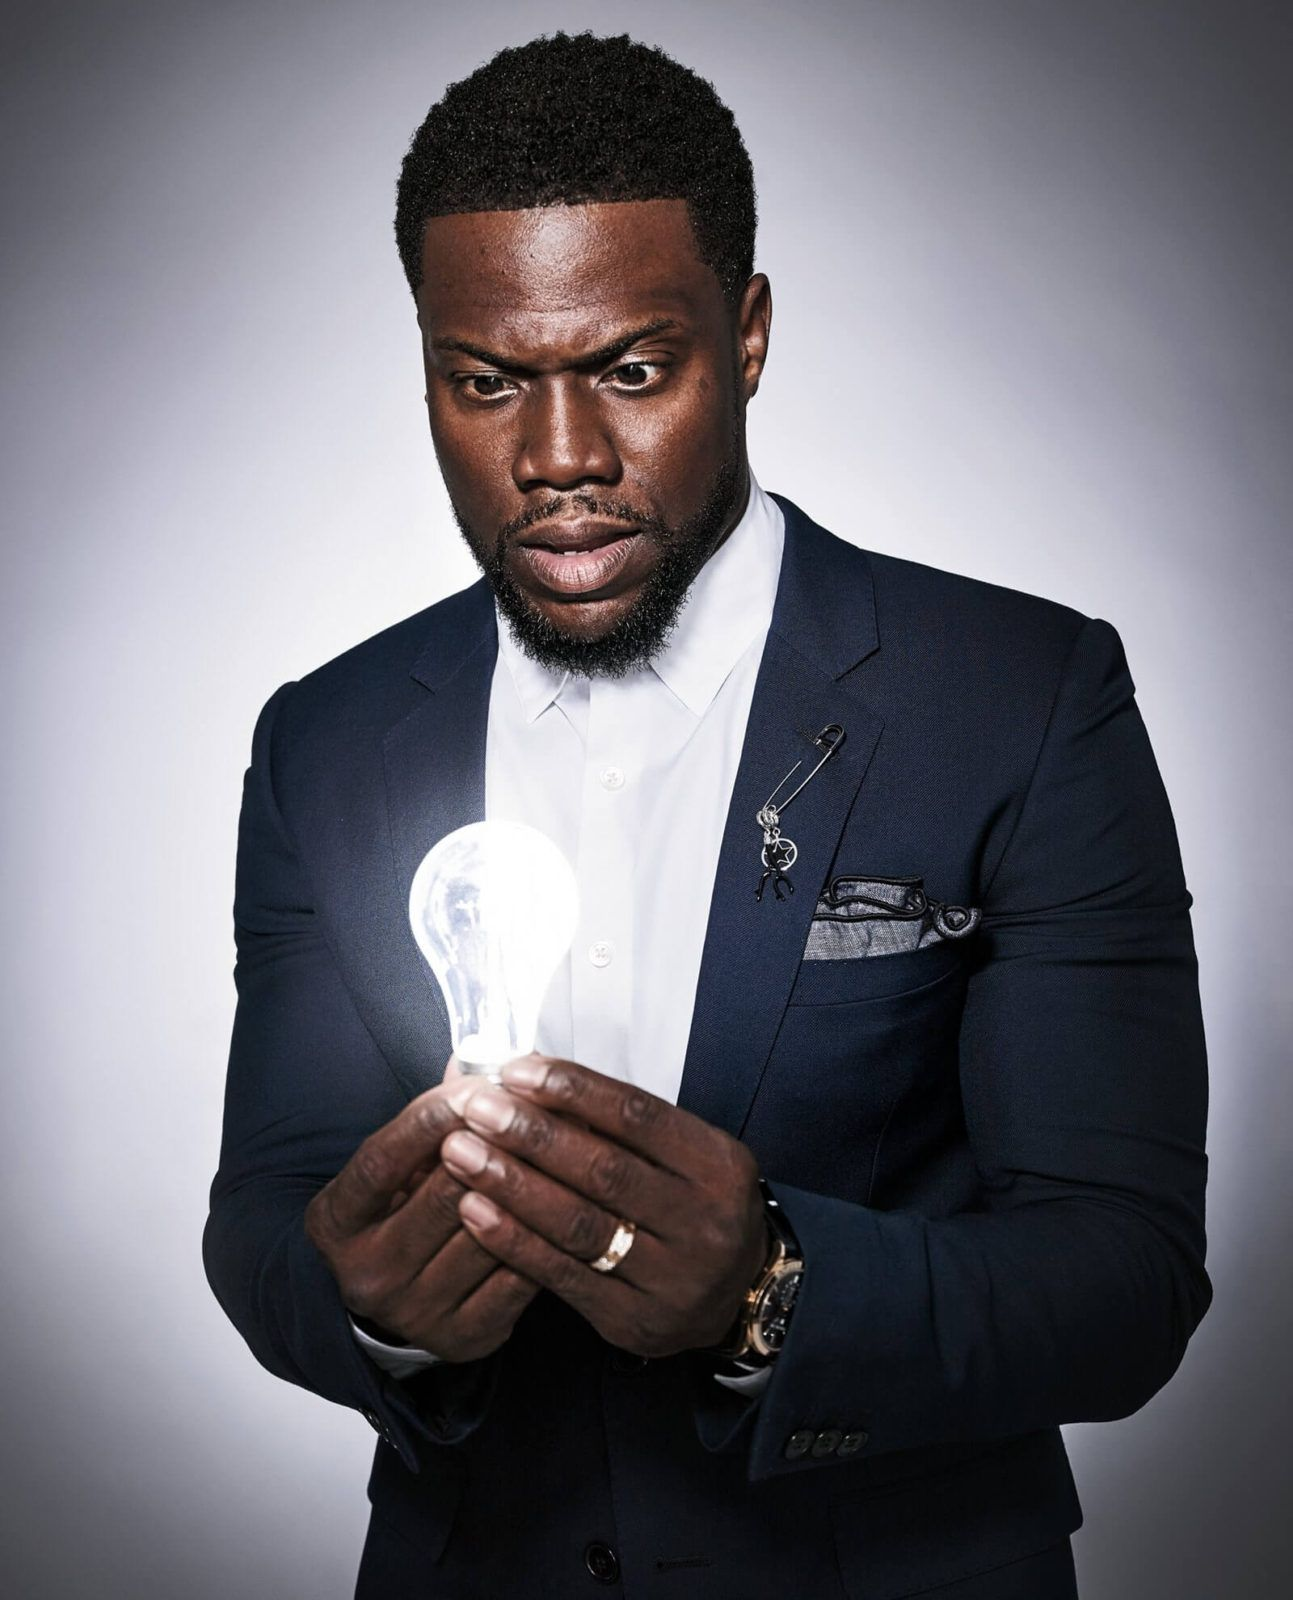 kevin hart wallpapers 5